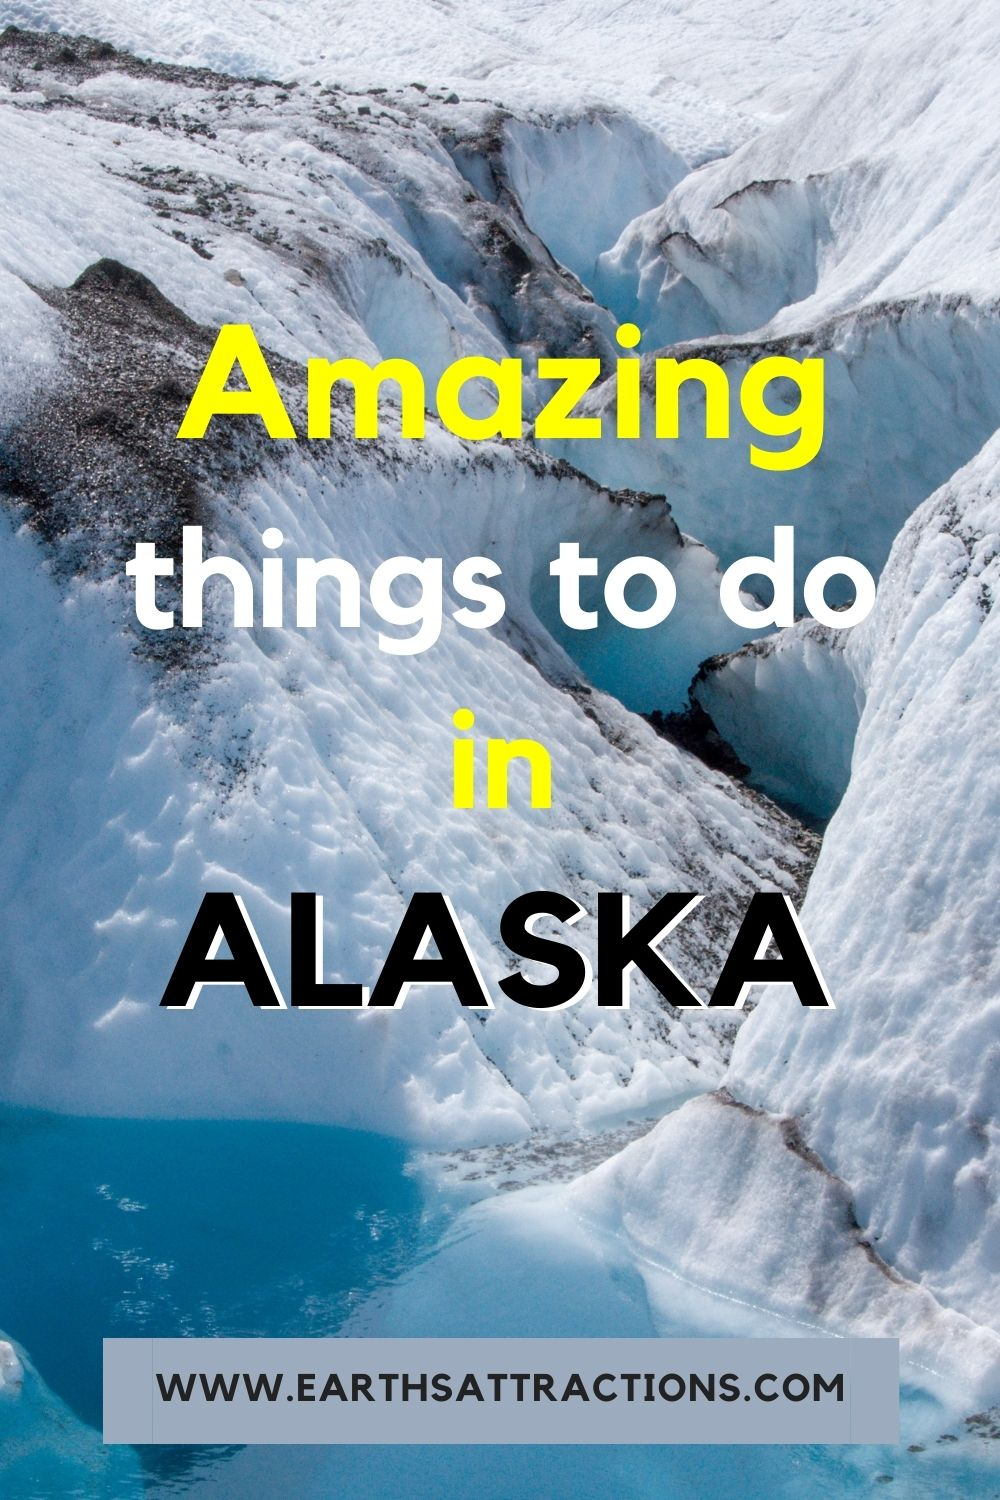 Amazing things to do in Alaska USA. Discover the best Alaskan adventures to include on your Alaska bucketlist! #alaska #adventure #usa #usartavel #earthsattractions #thingstodo #alaskathingstodo #glacier #glaciers